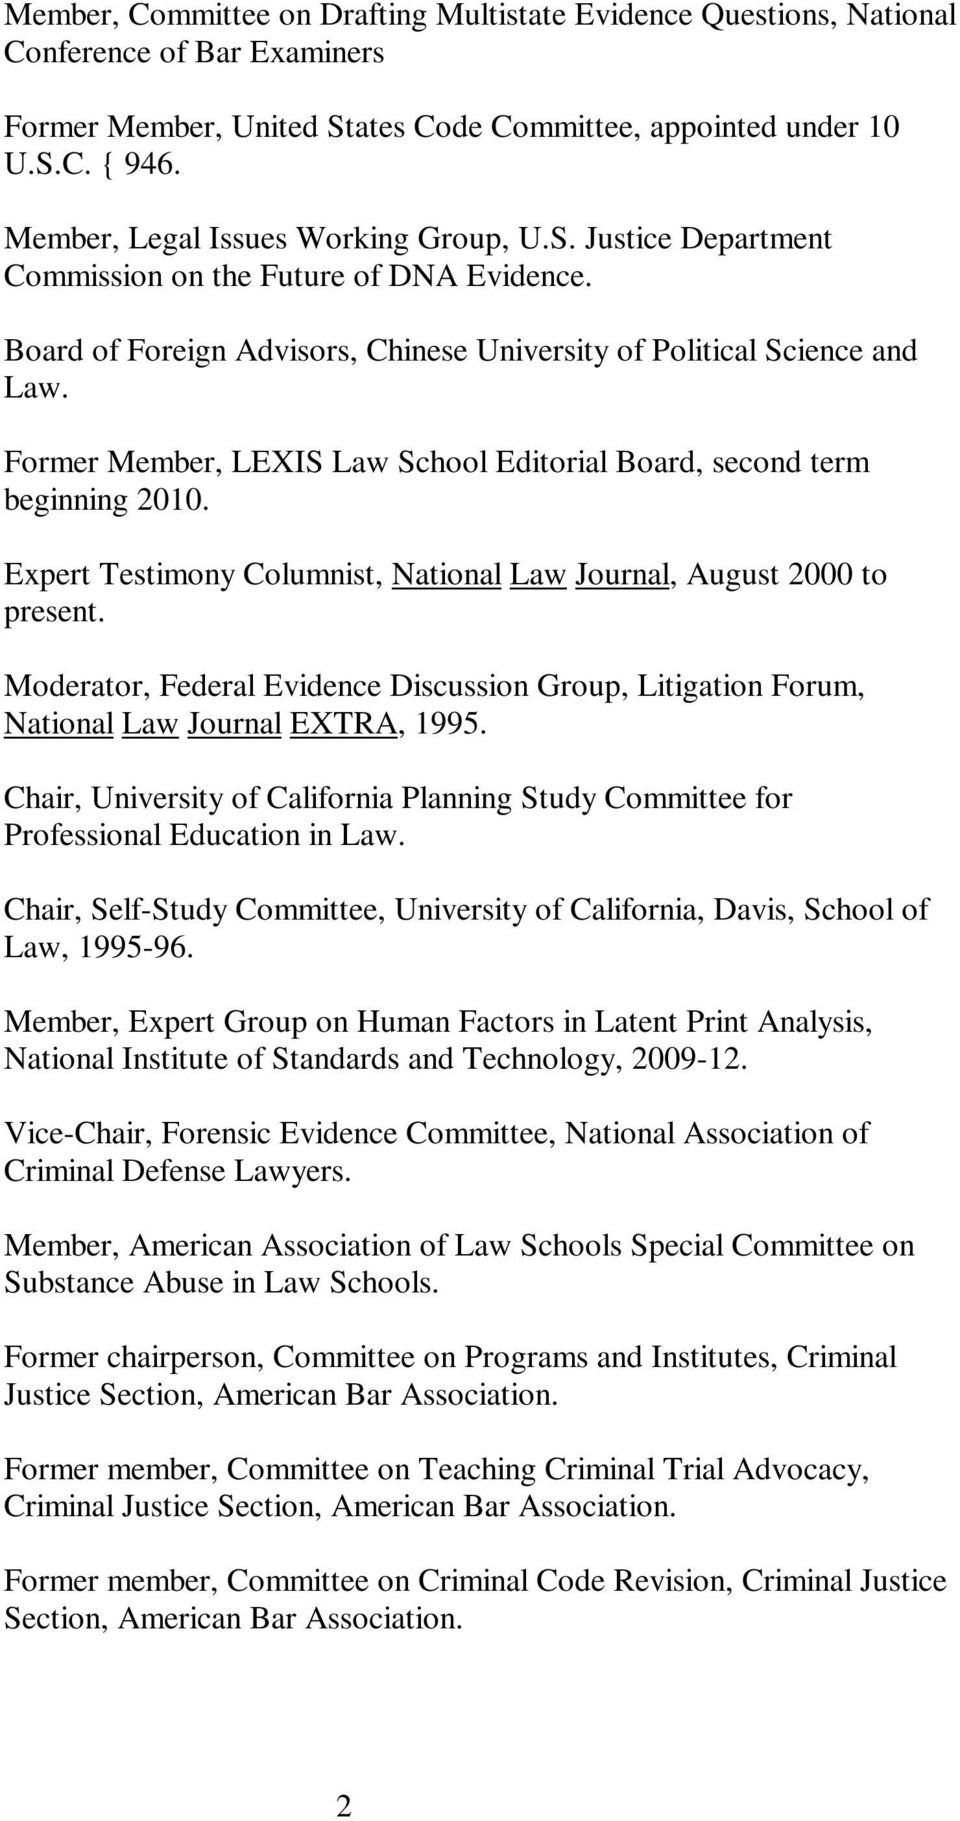 Former Member, LEXIS Law School Editorial Board, second term beginning 2010. Expert Testimony Columnist, National Law Journal, August 2000 to present.